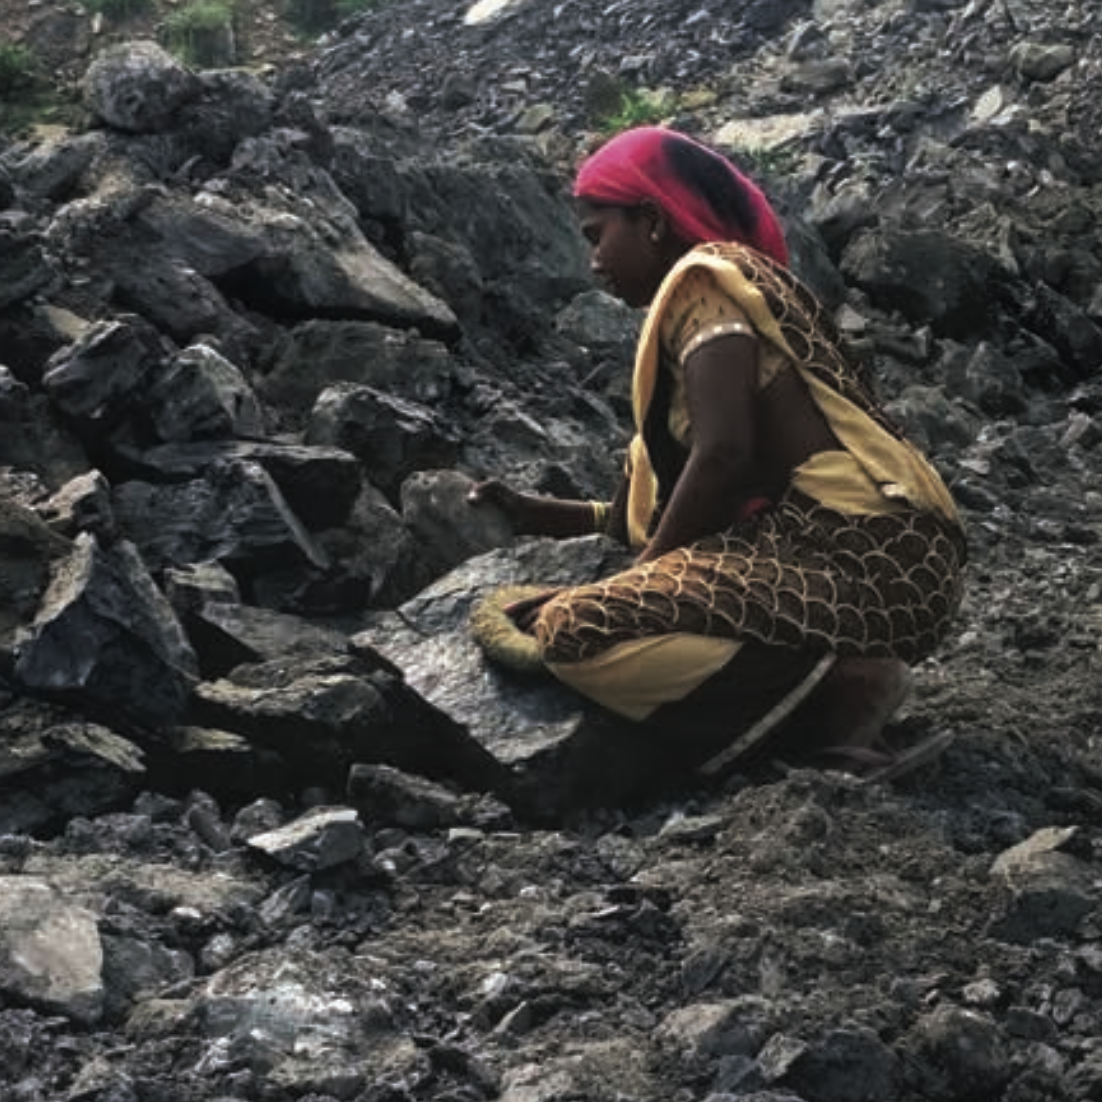 Policy Brief - Beyond Coal: Just Transition in India's Coal Districts